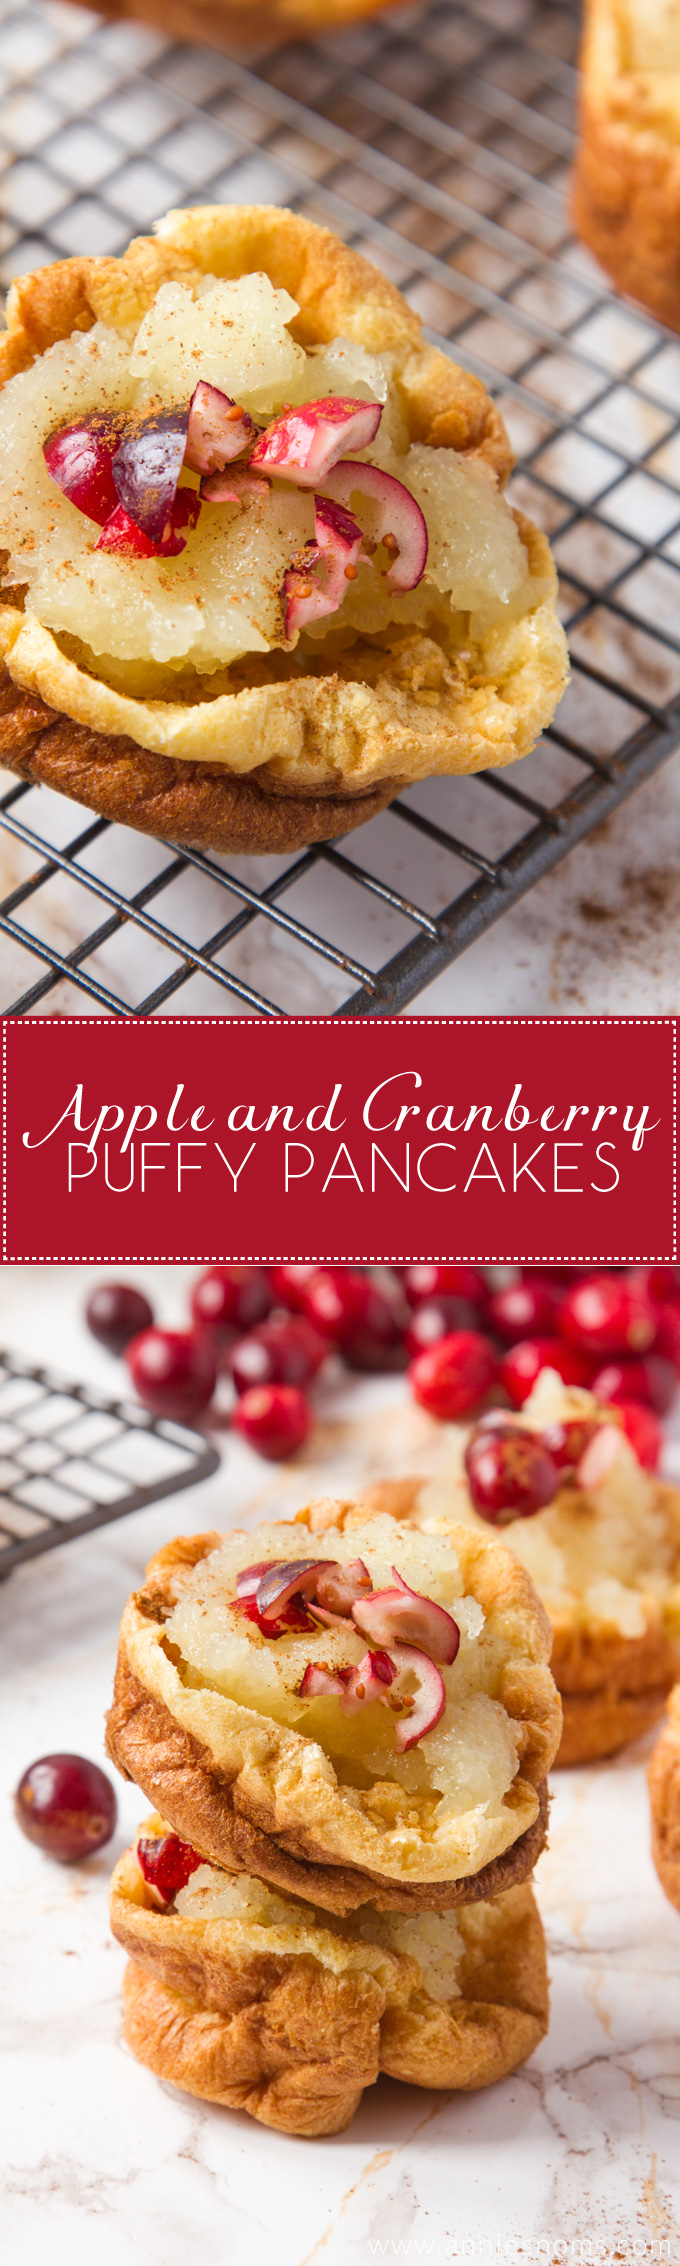 These cute little Apple and Cranberry Puffy Pancakes are the perfect breakfast on the go! Ready in under 30 minutes, you can fill them with whatever fruit you want to make an utterly delicious portable breakfast!